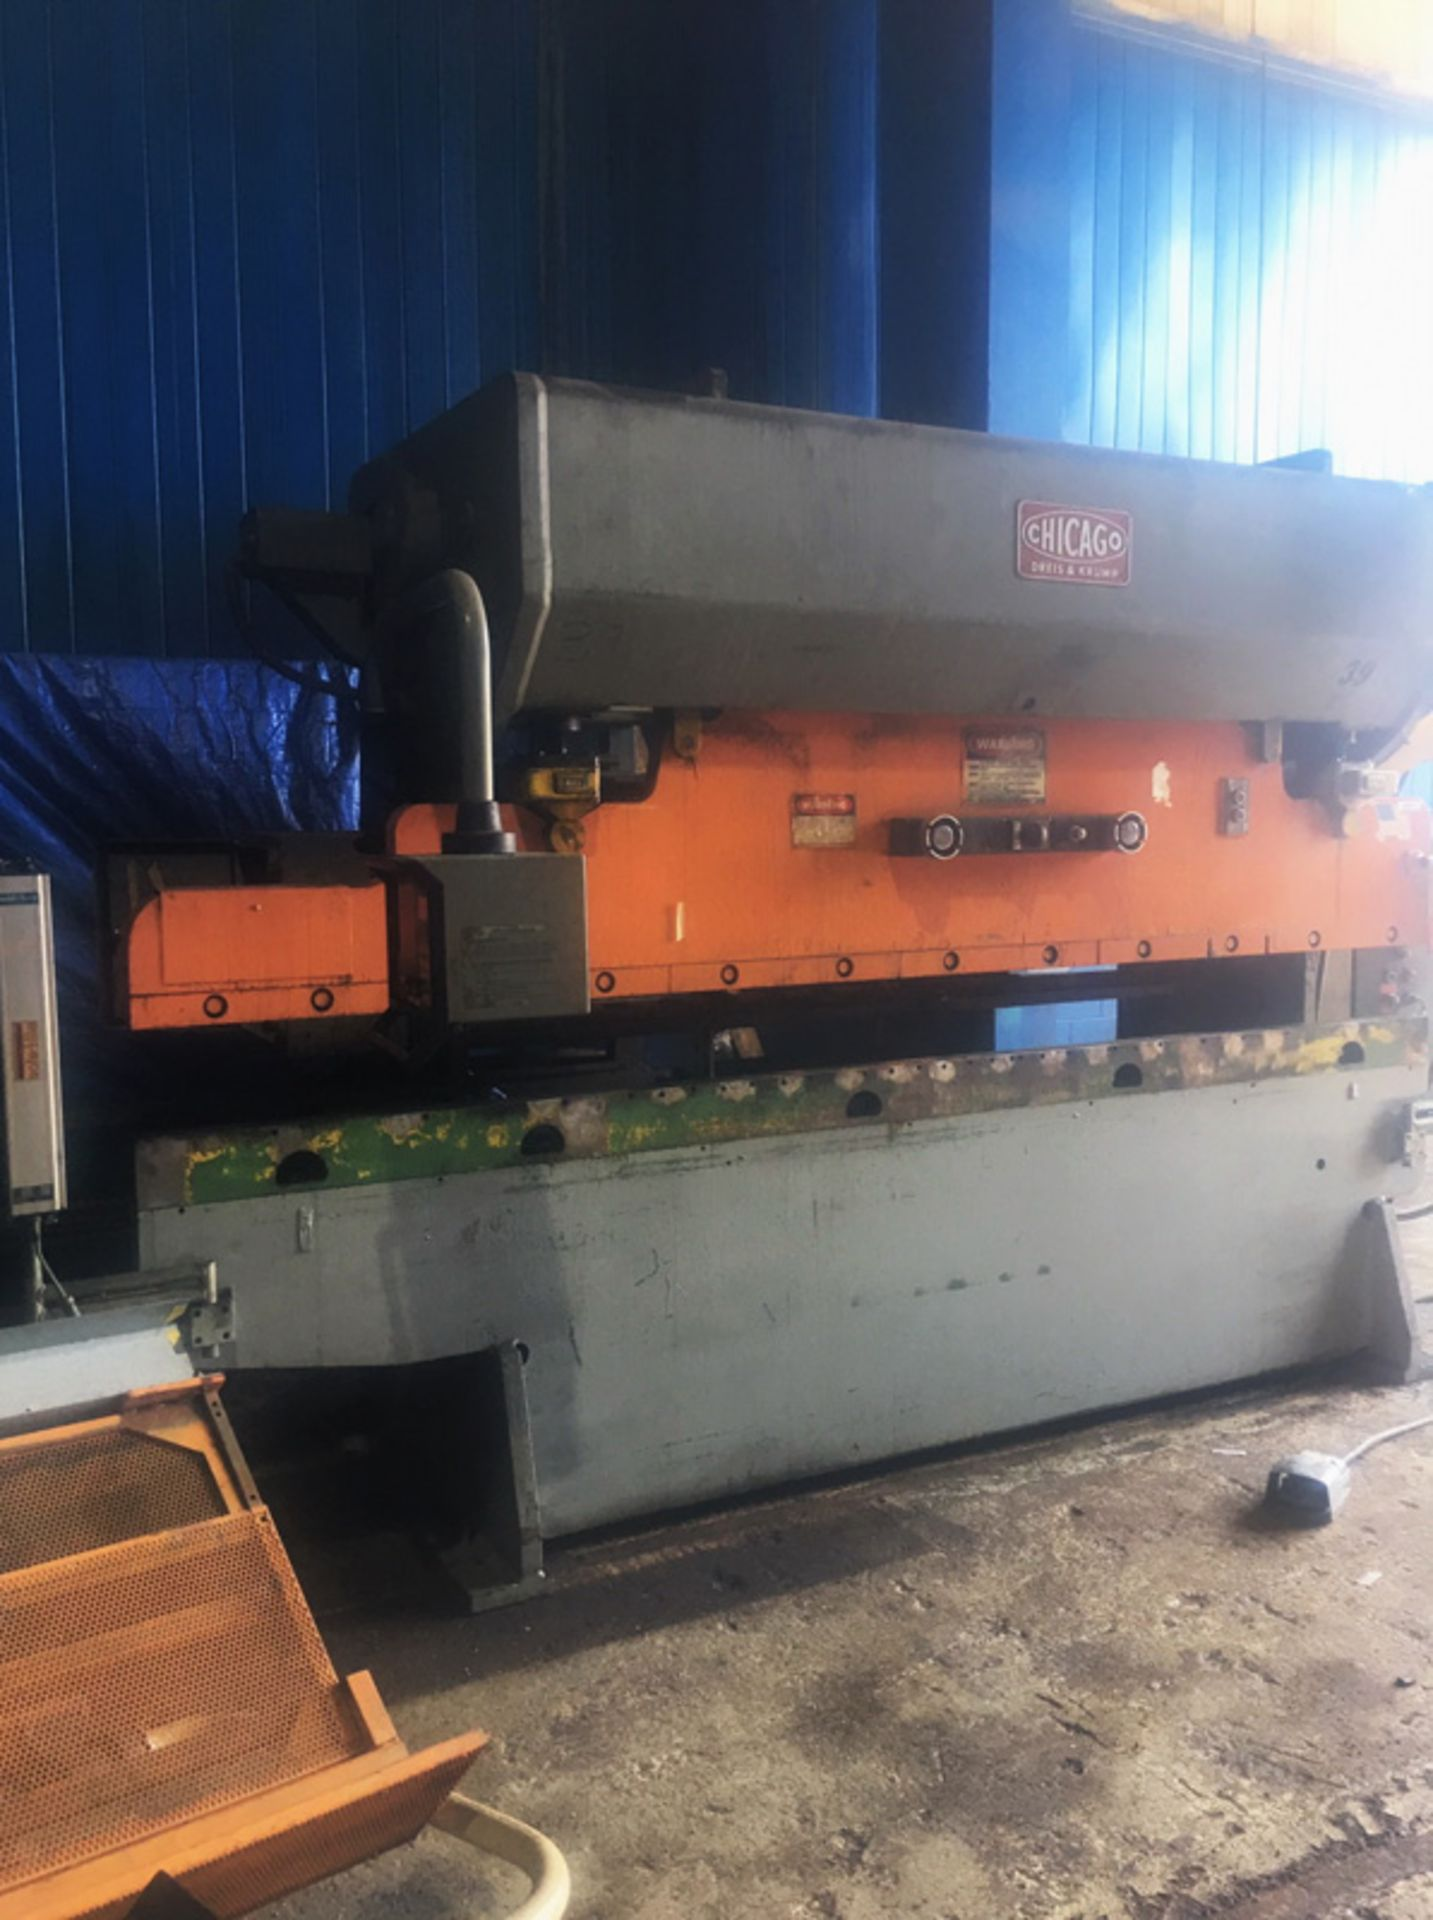 Lot 39 - Chicago CNC Air Clutch Press Brake | 90-Ton x 12', Mdl: 810-L, S/N: L-19376 - 8649P